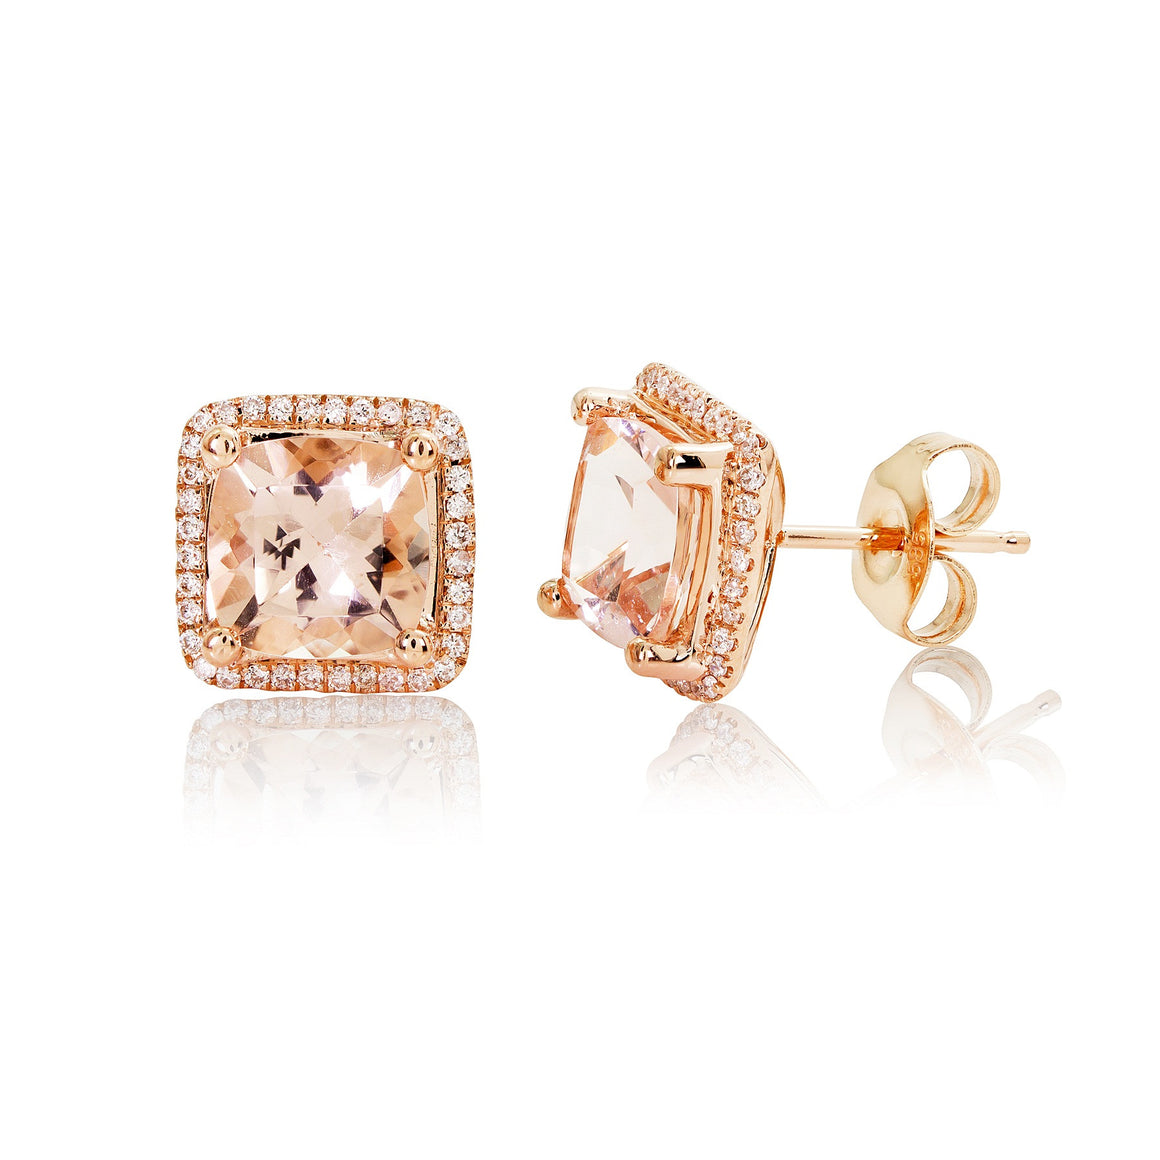 Rose Gold, Diamond and Morganite Earrings